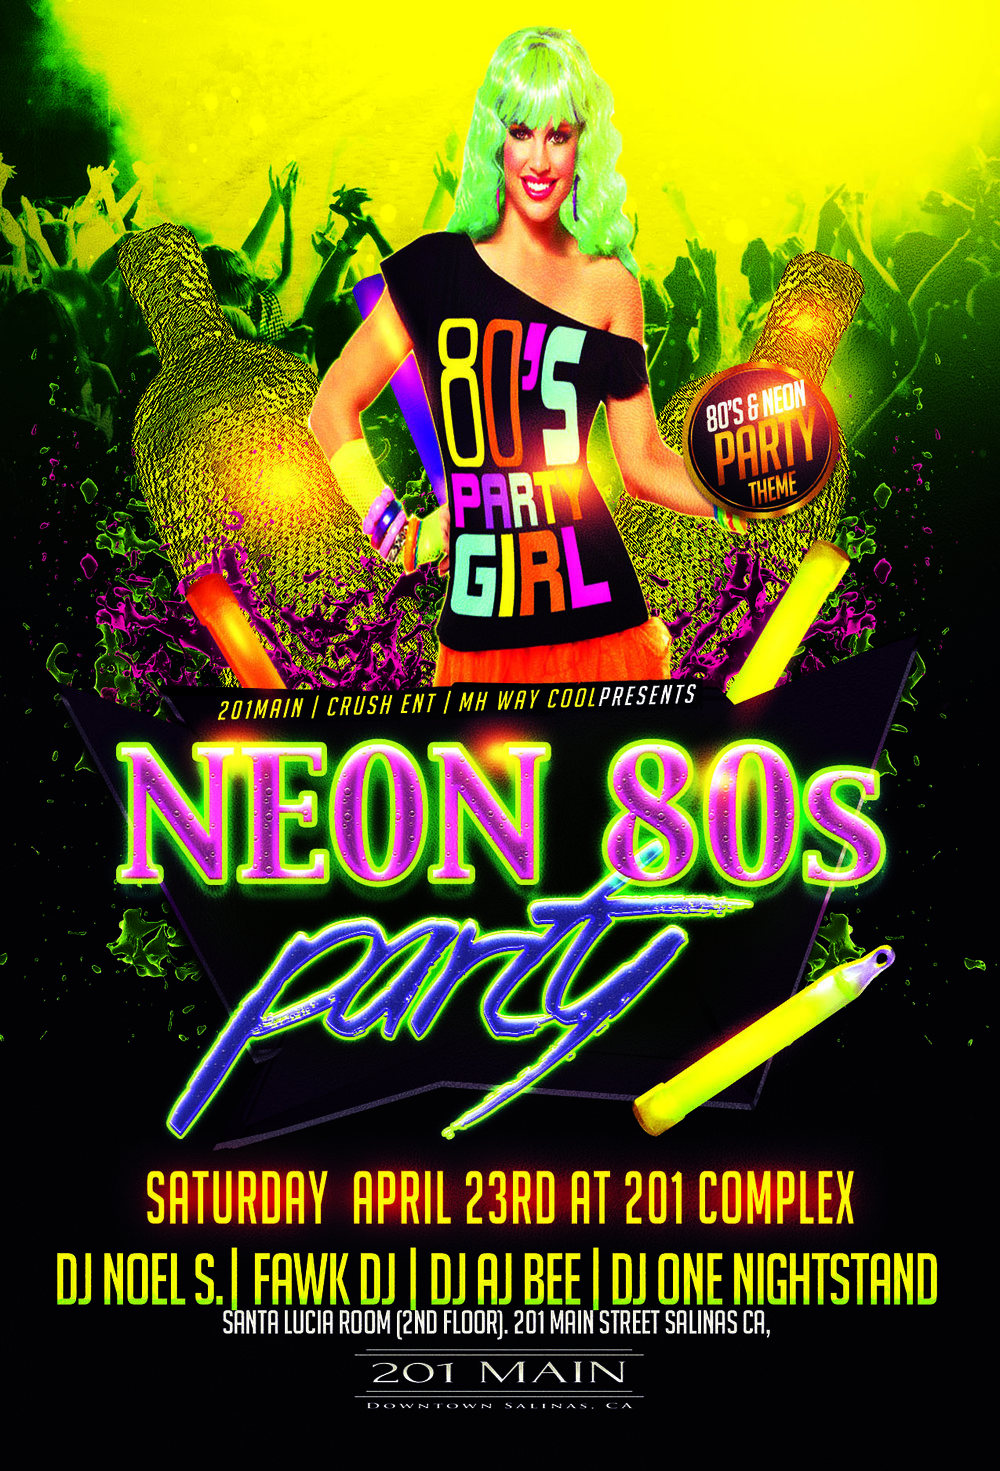 FRONTneon80sparty.jpg